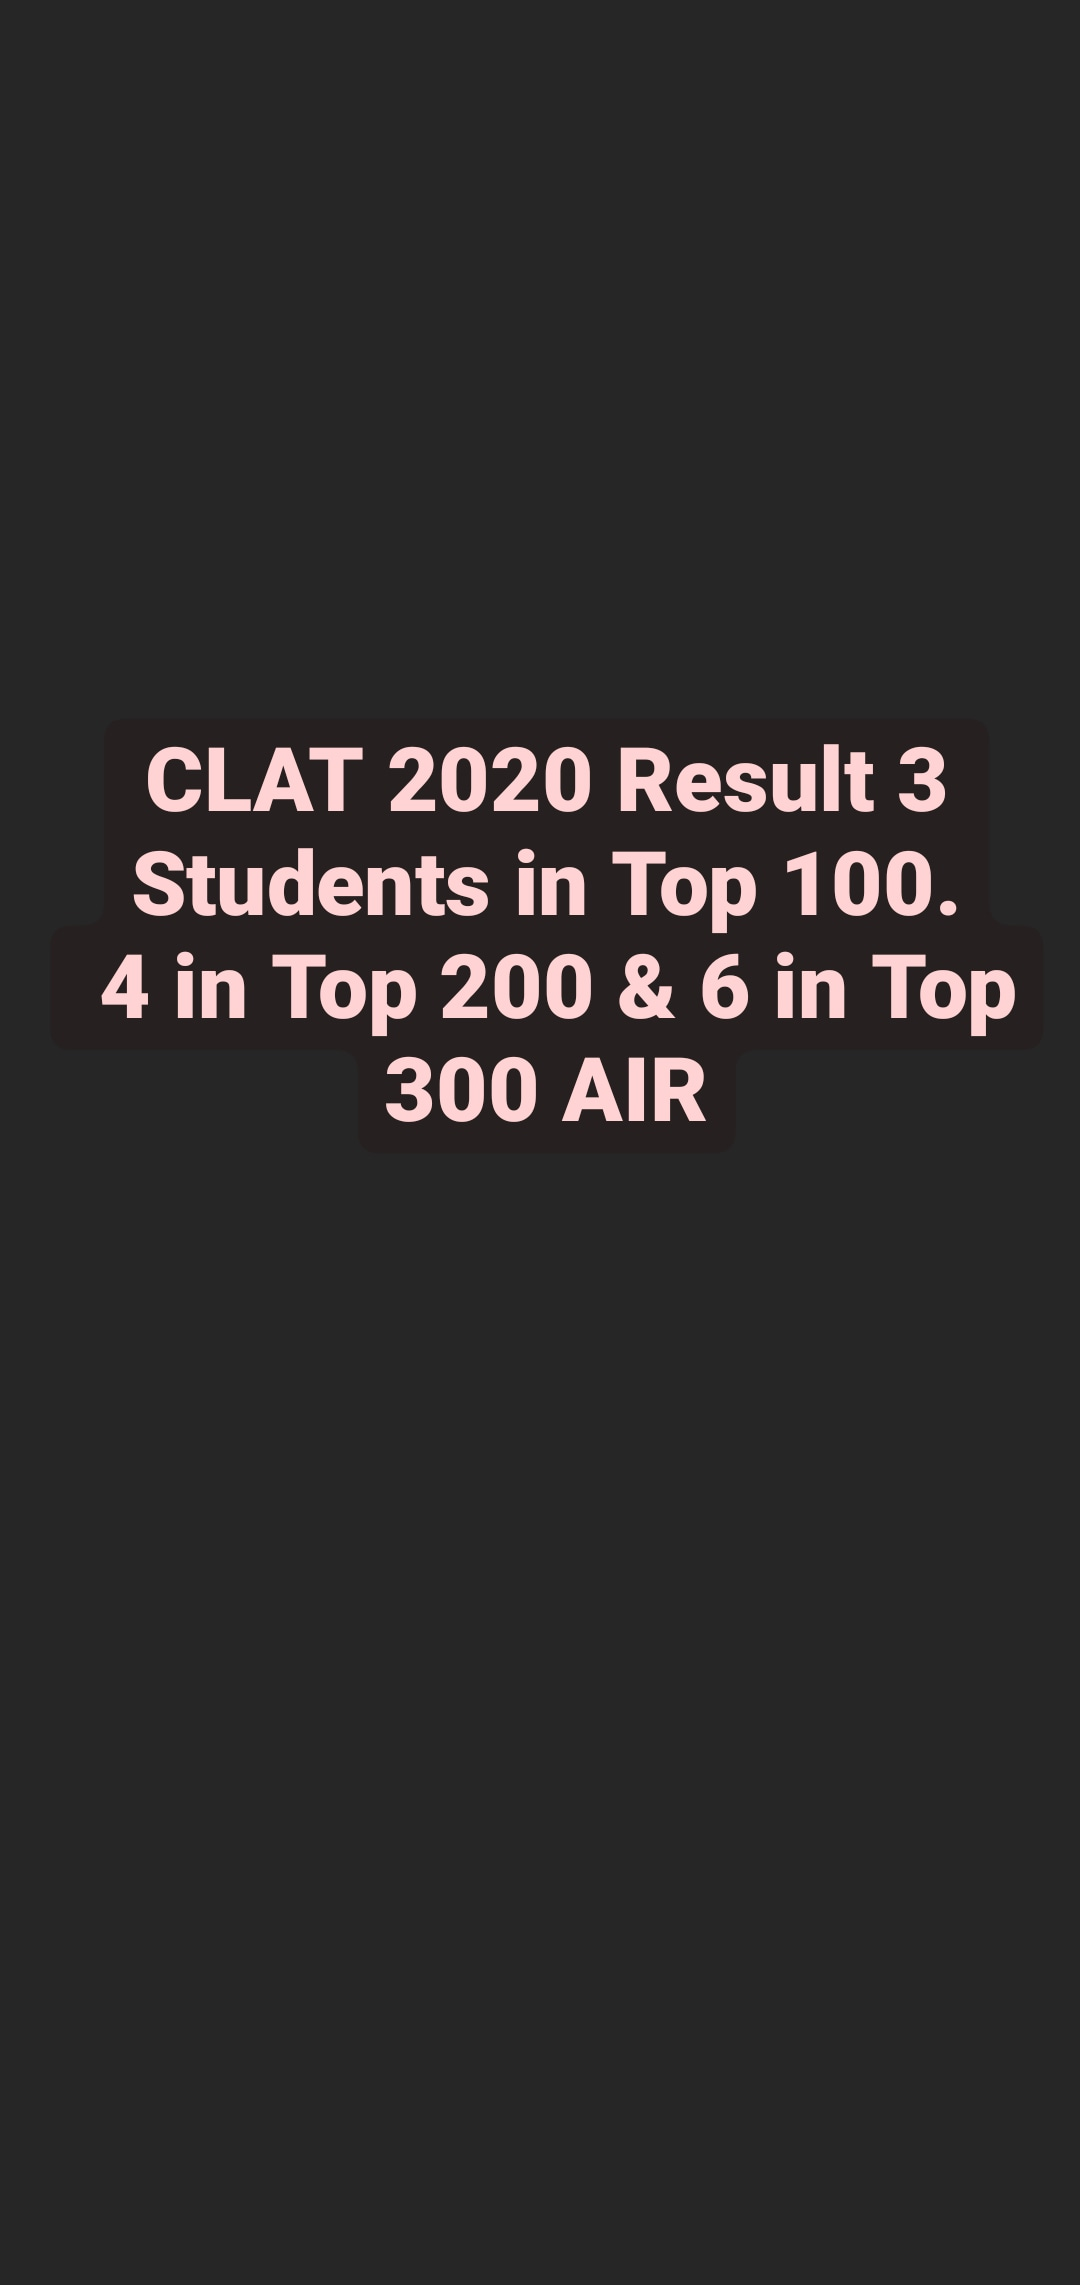 JURIST LAW ACADEMY, best clat coaching in Chandigarh, best law entrance coaching in Chandigarh, best online clat coaching in Chandigarh